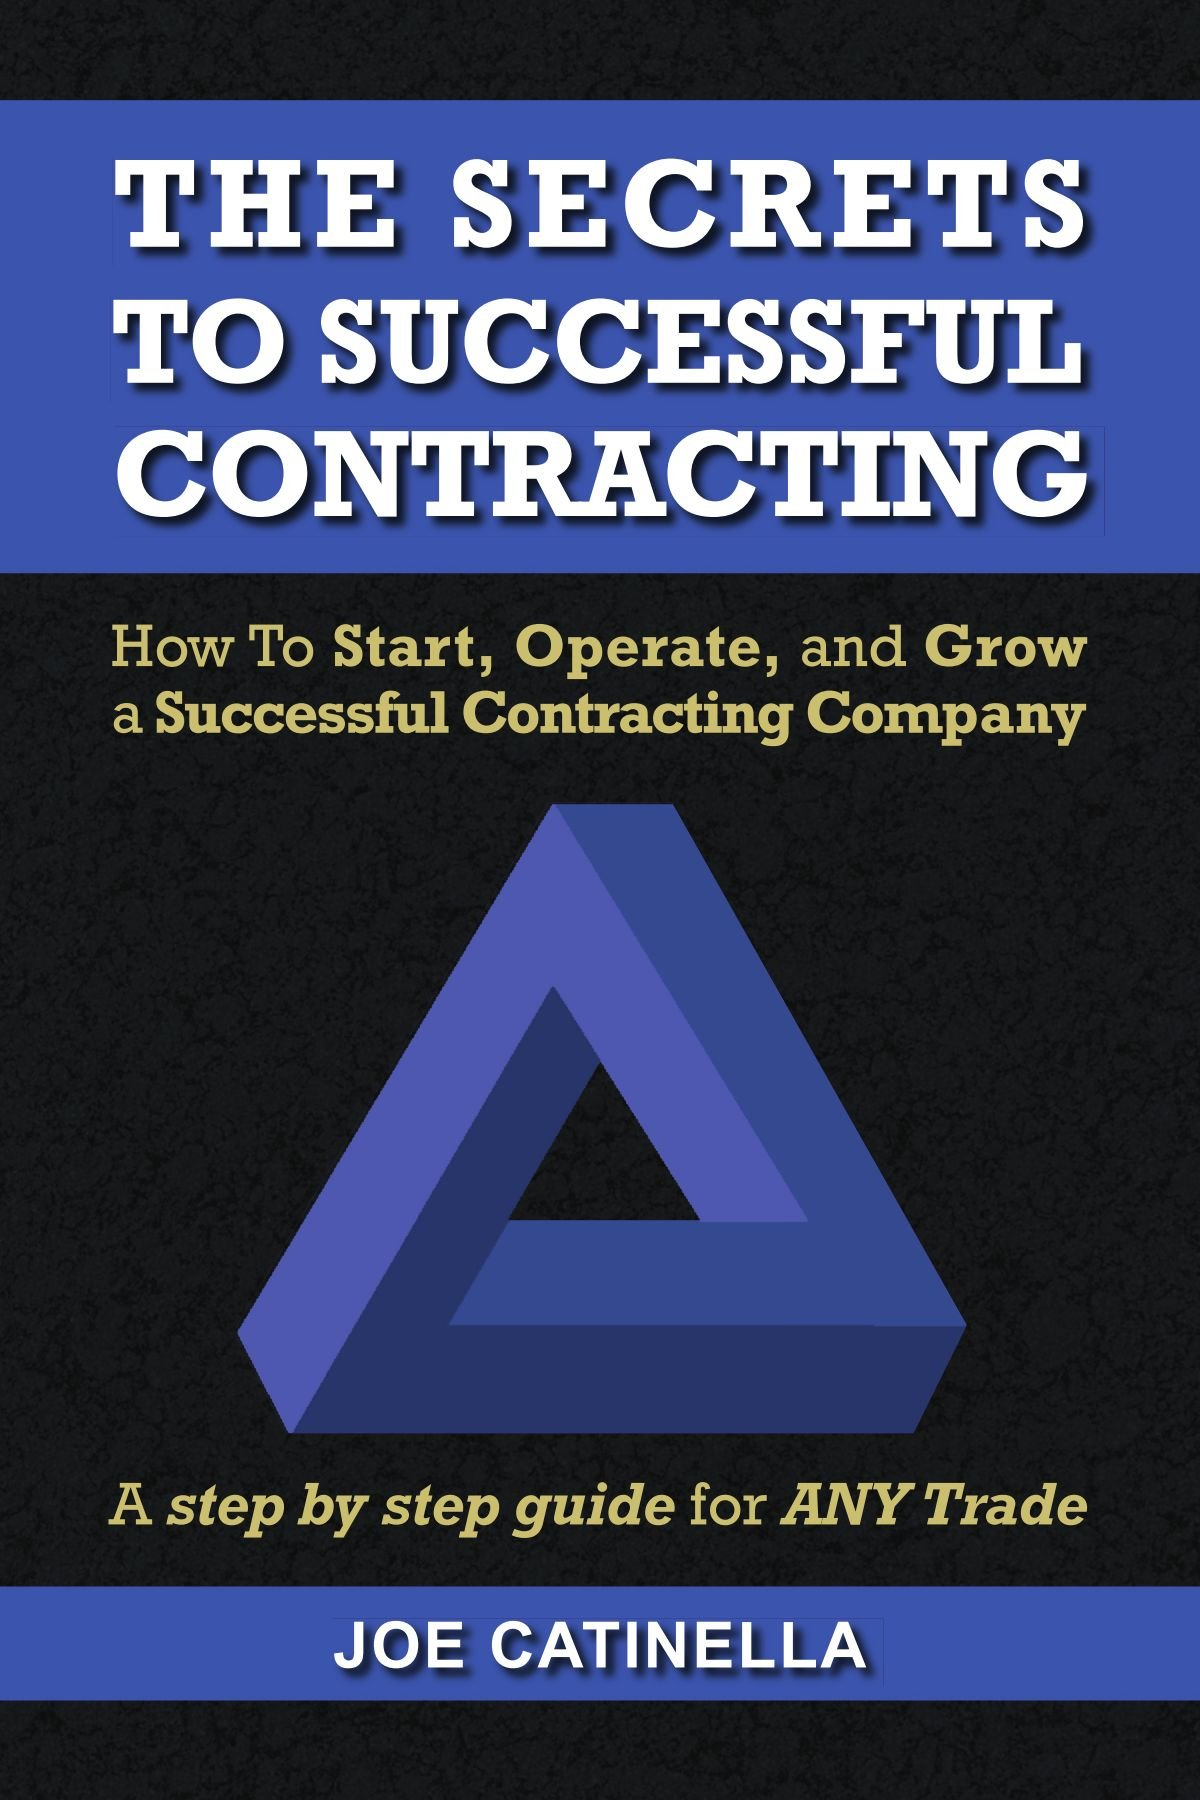 Read Online The Secrets to Successful Contracting: How to Start, Operate, and Grow a Successful Contracting Company ebook